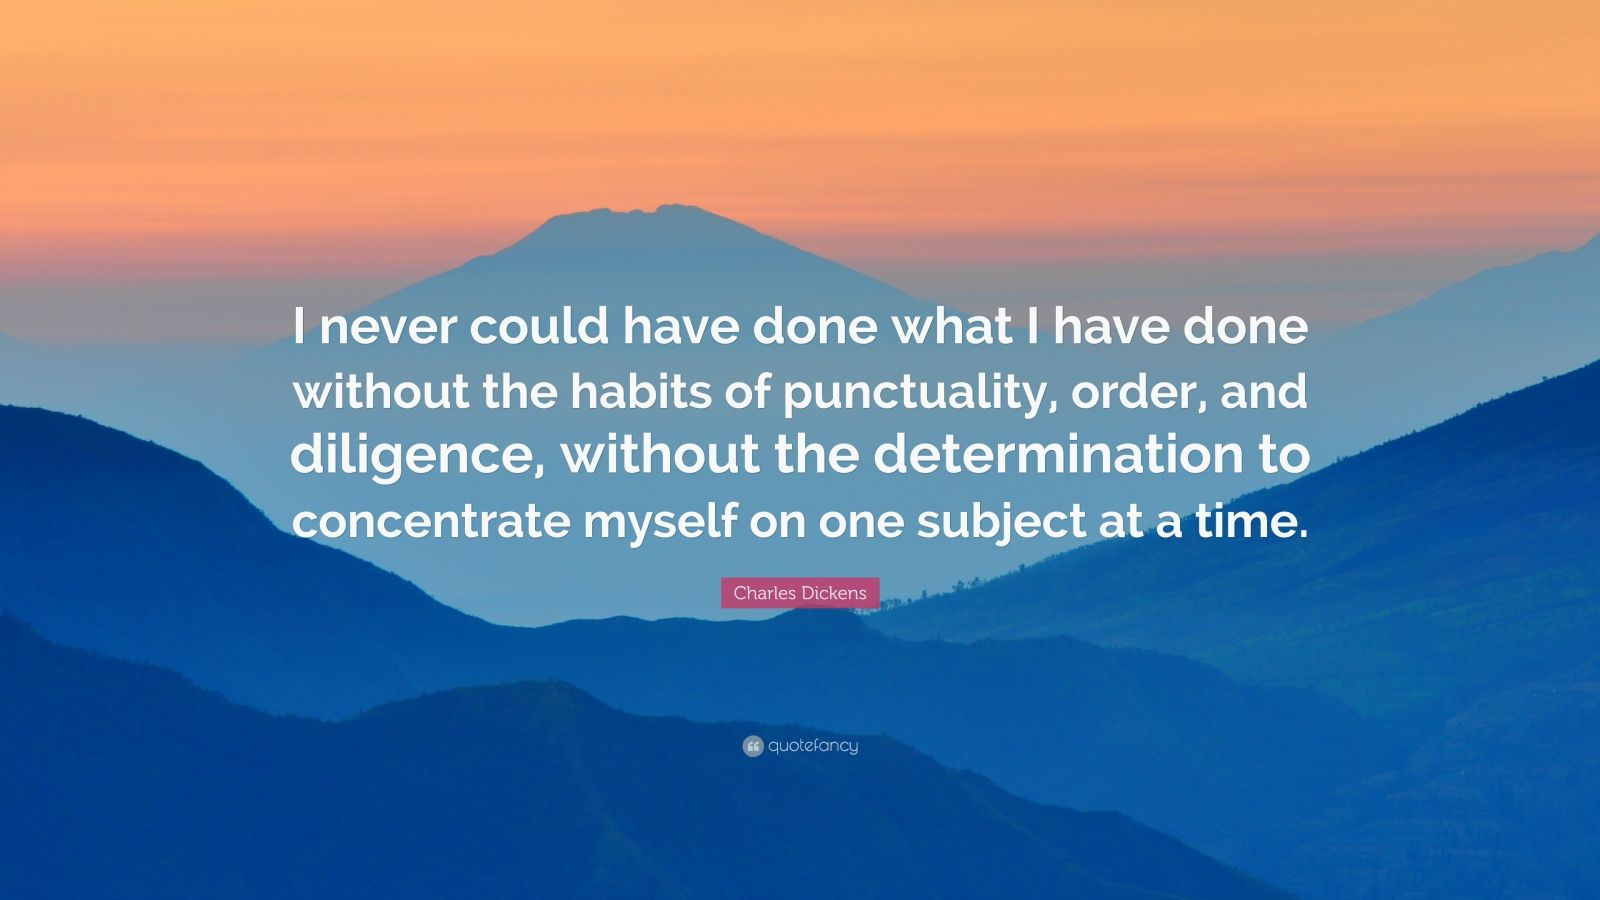 """Charles Dickens Quote: """"I never could have done what I have done without the habits of punctuality, order, and diligence, without the determination to concentrate myself on one subject at a time."""""""